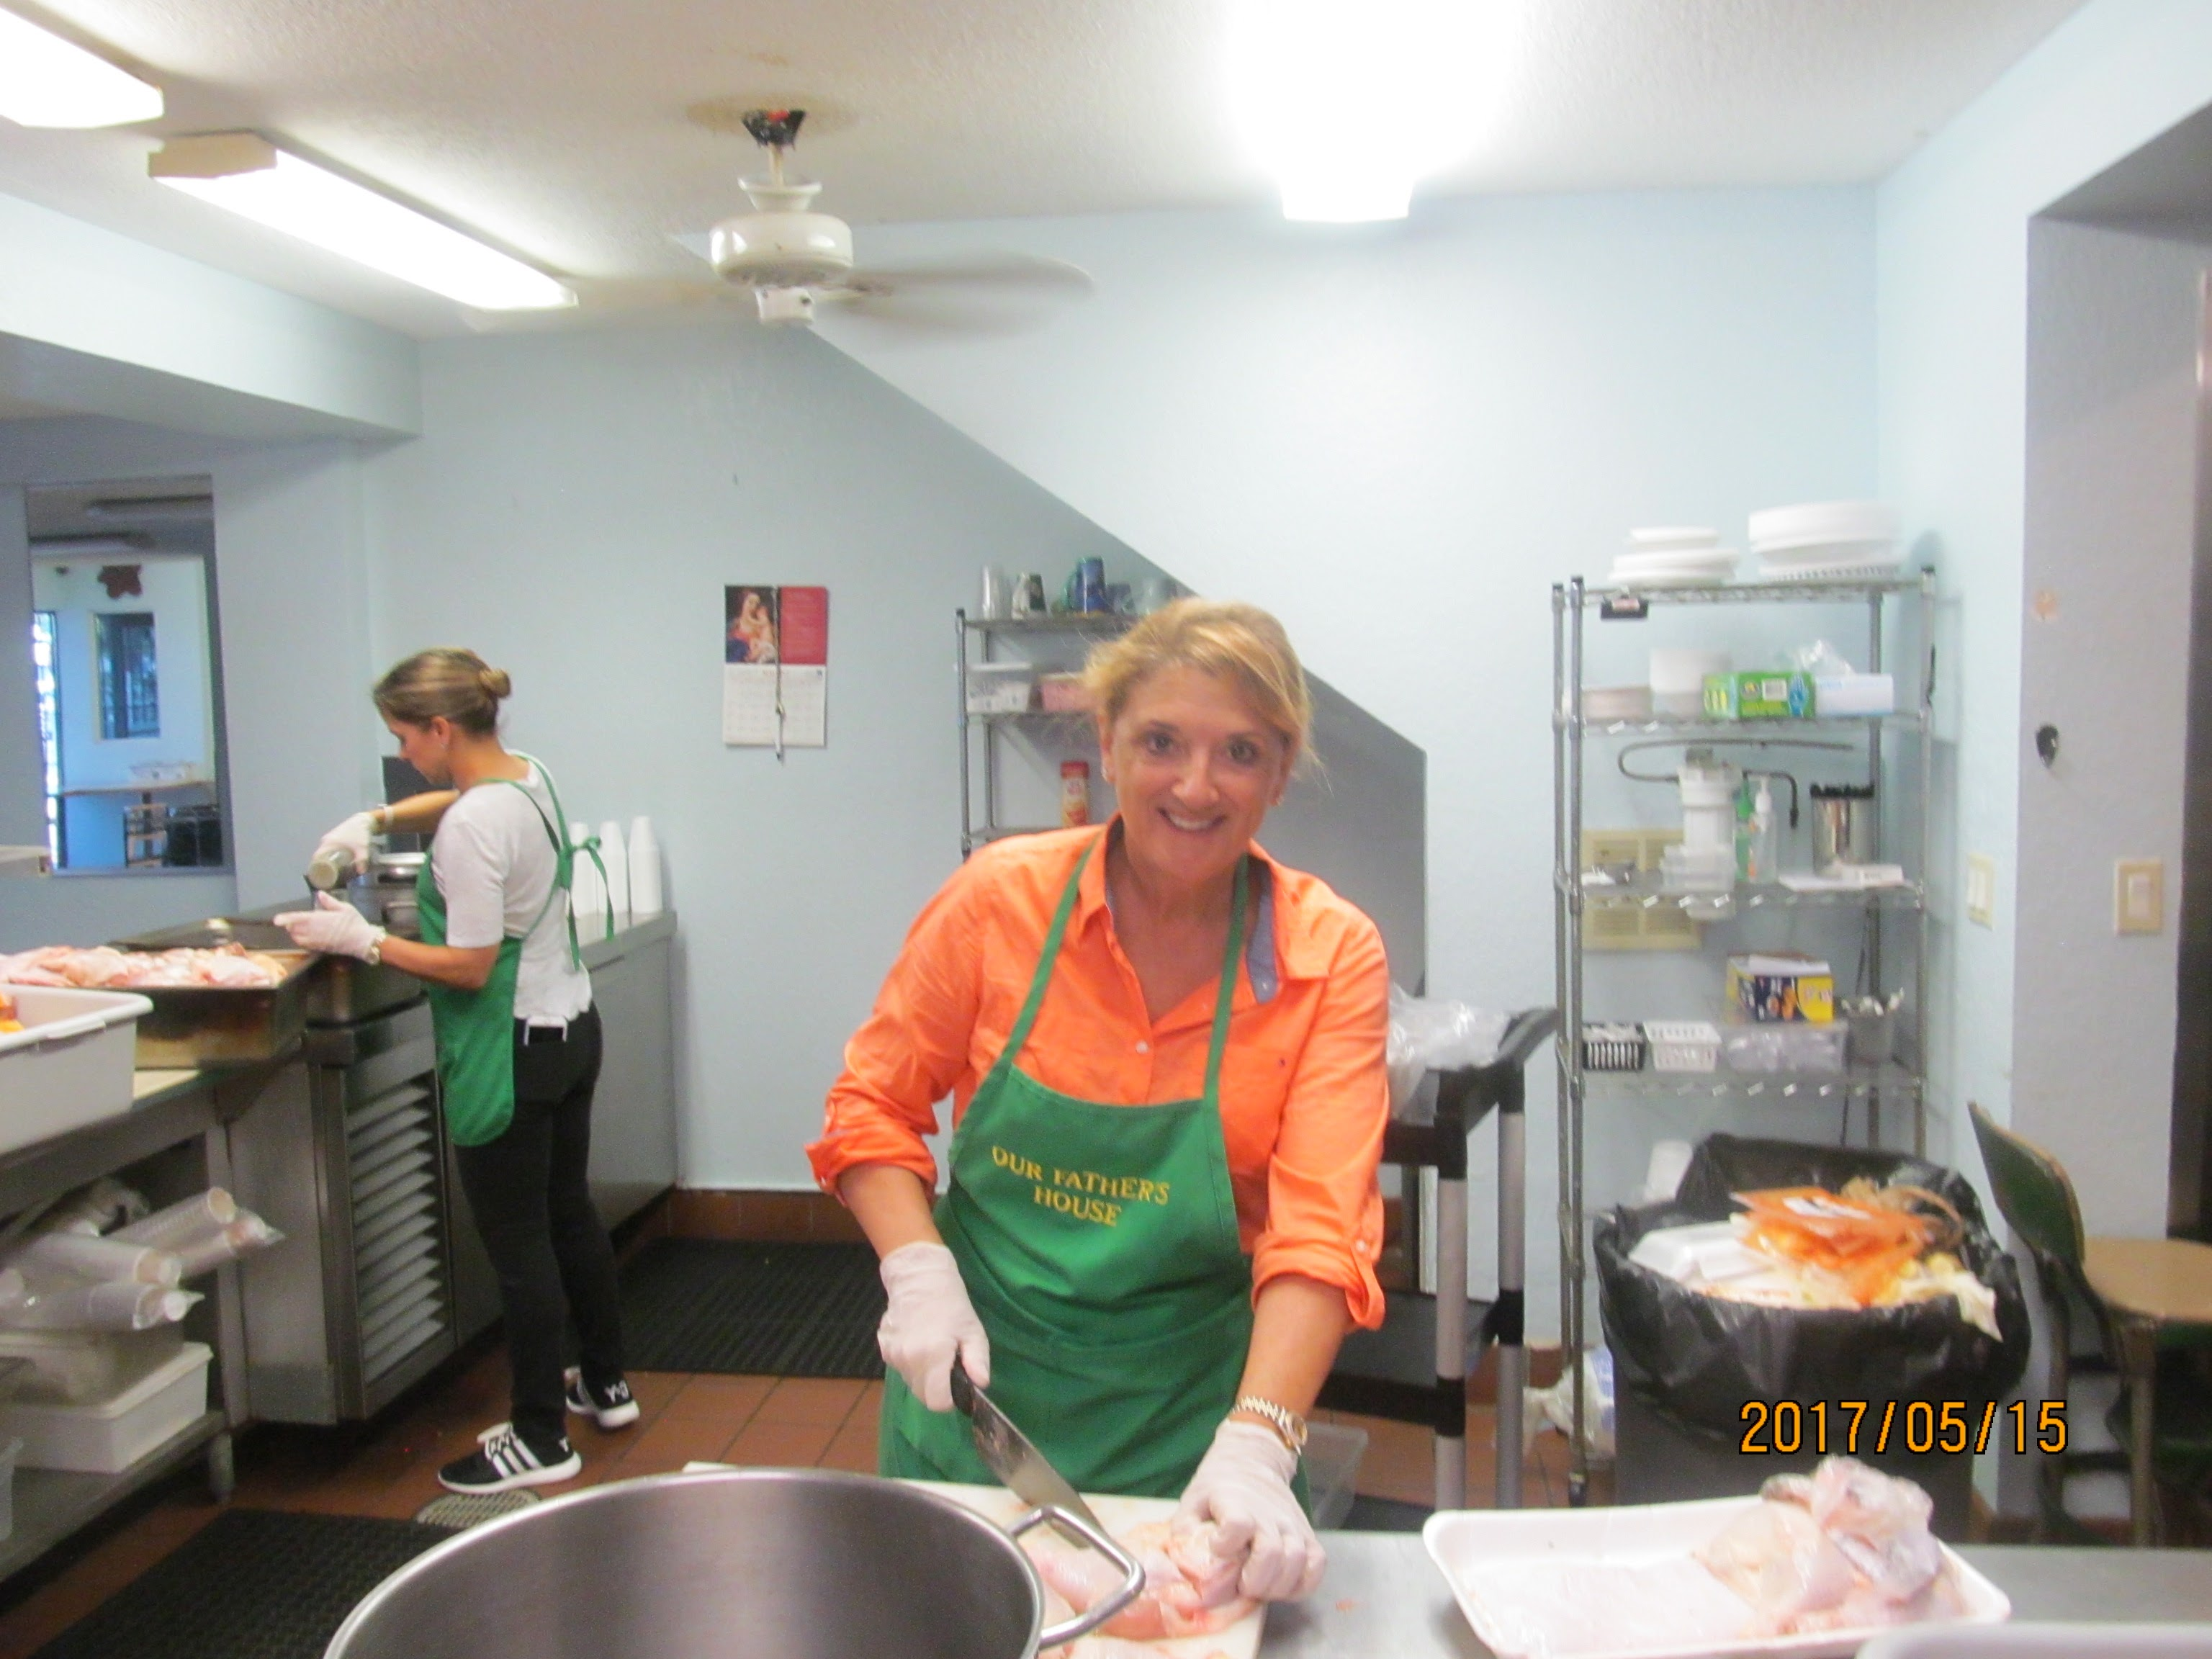 Soup kitchen volunteers staff cooking for homeless people.